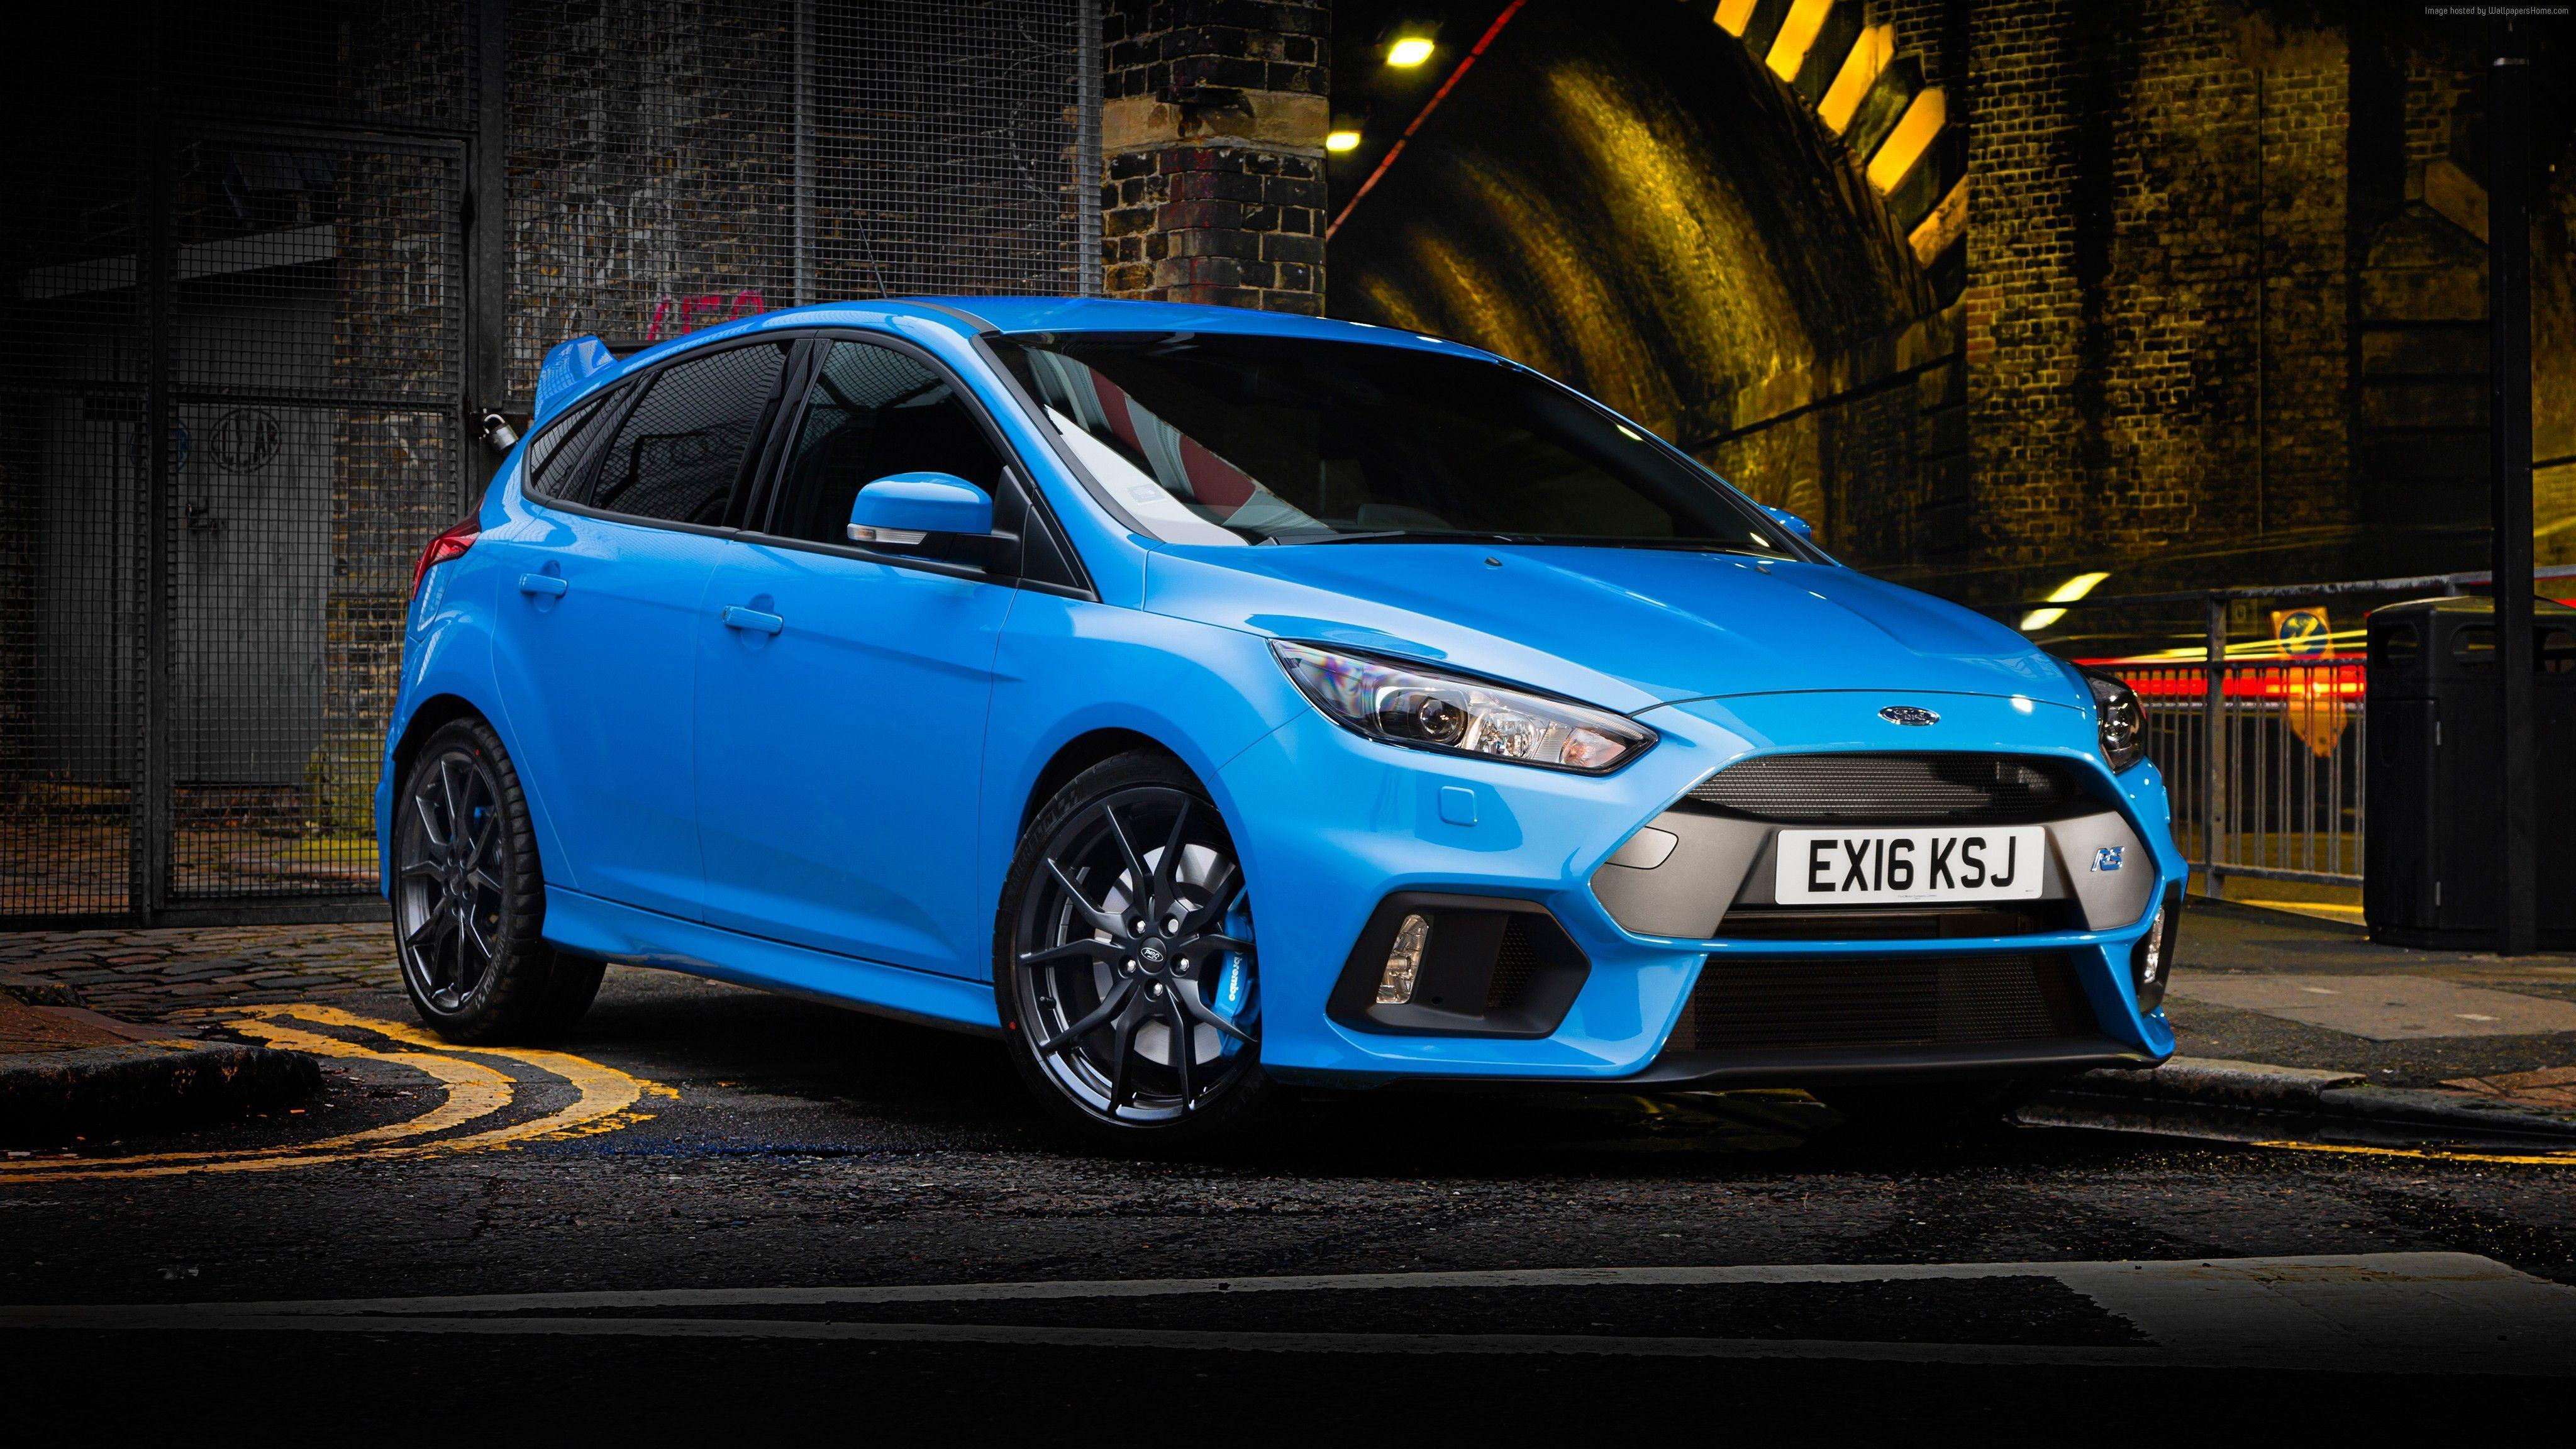 Ford Focus Rs Wallpapers Top Free Ford Focus Rs Backgrounds Wallpaperaccess